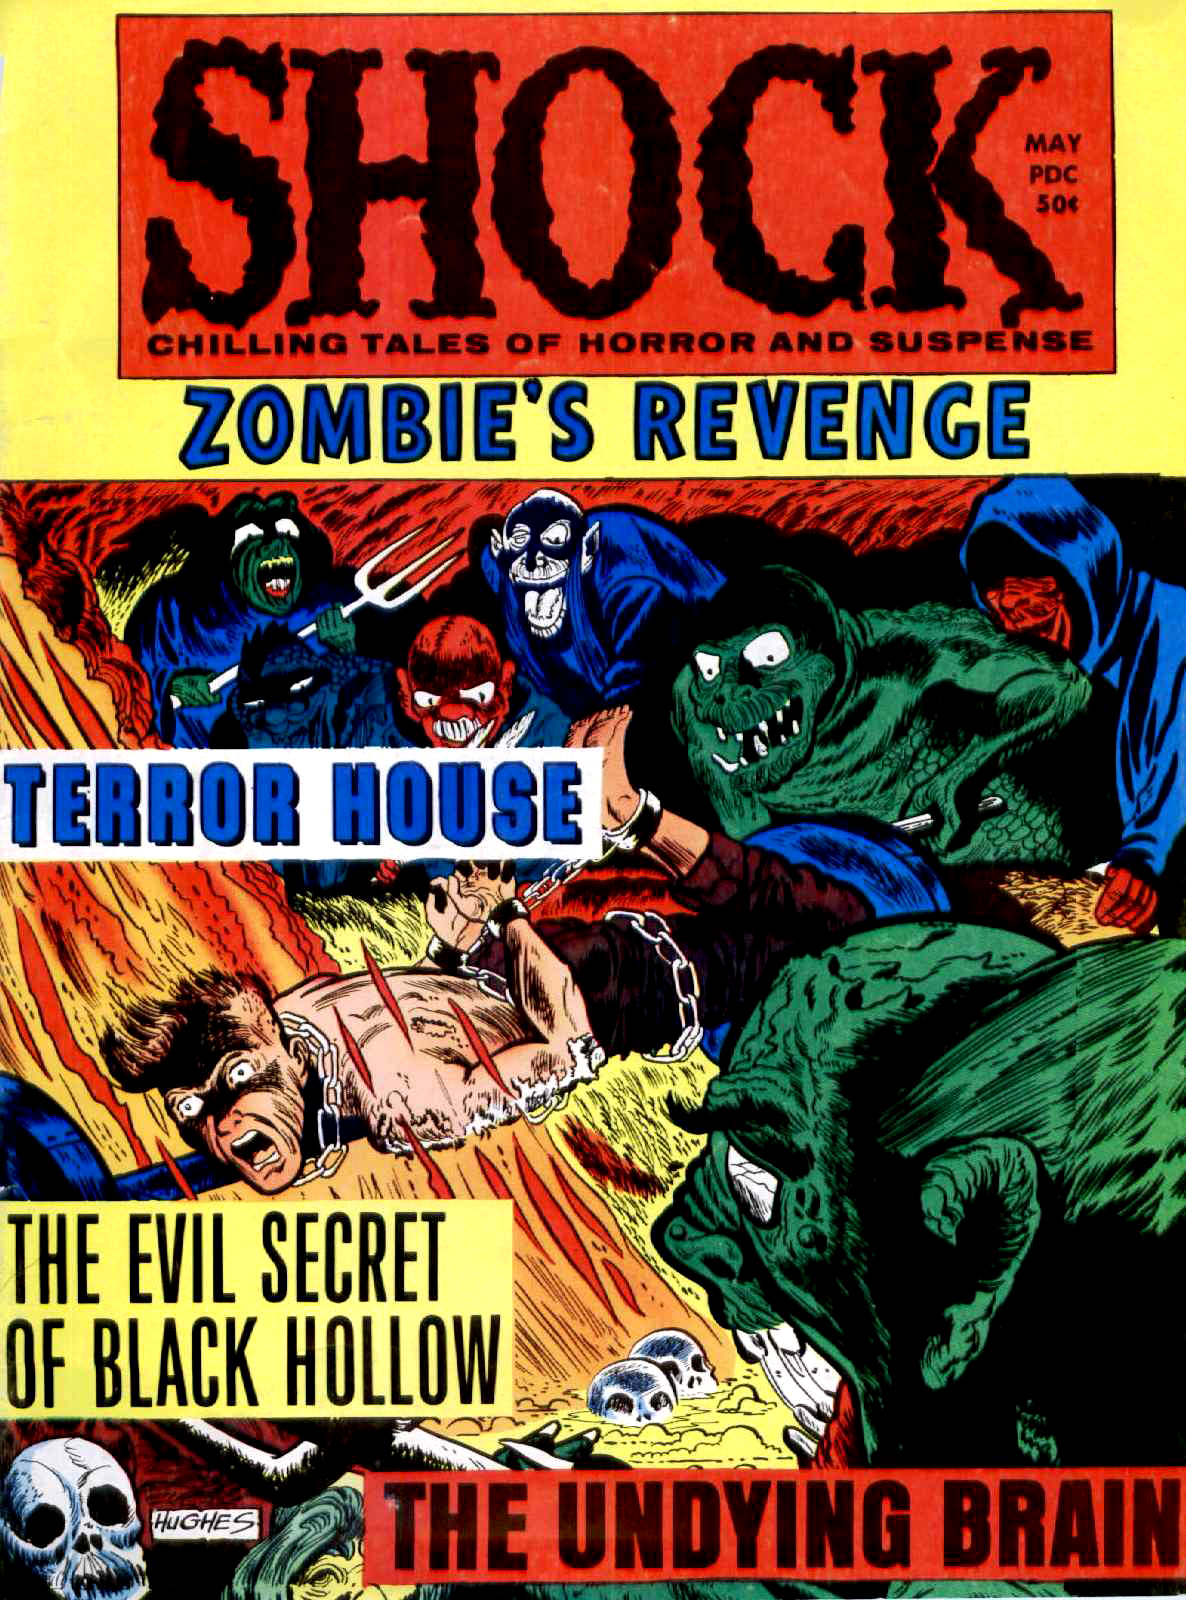 Shock - Volume 2, Issue 02, May 1970